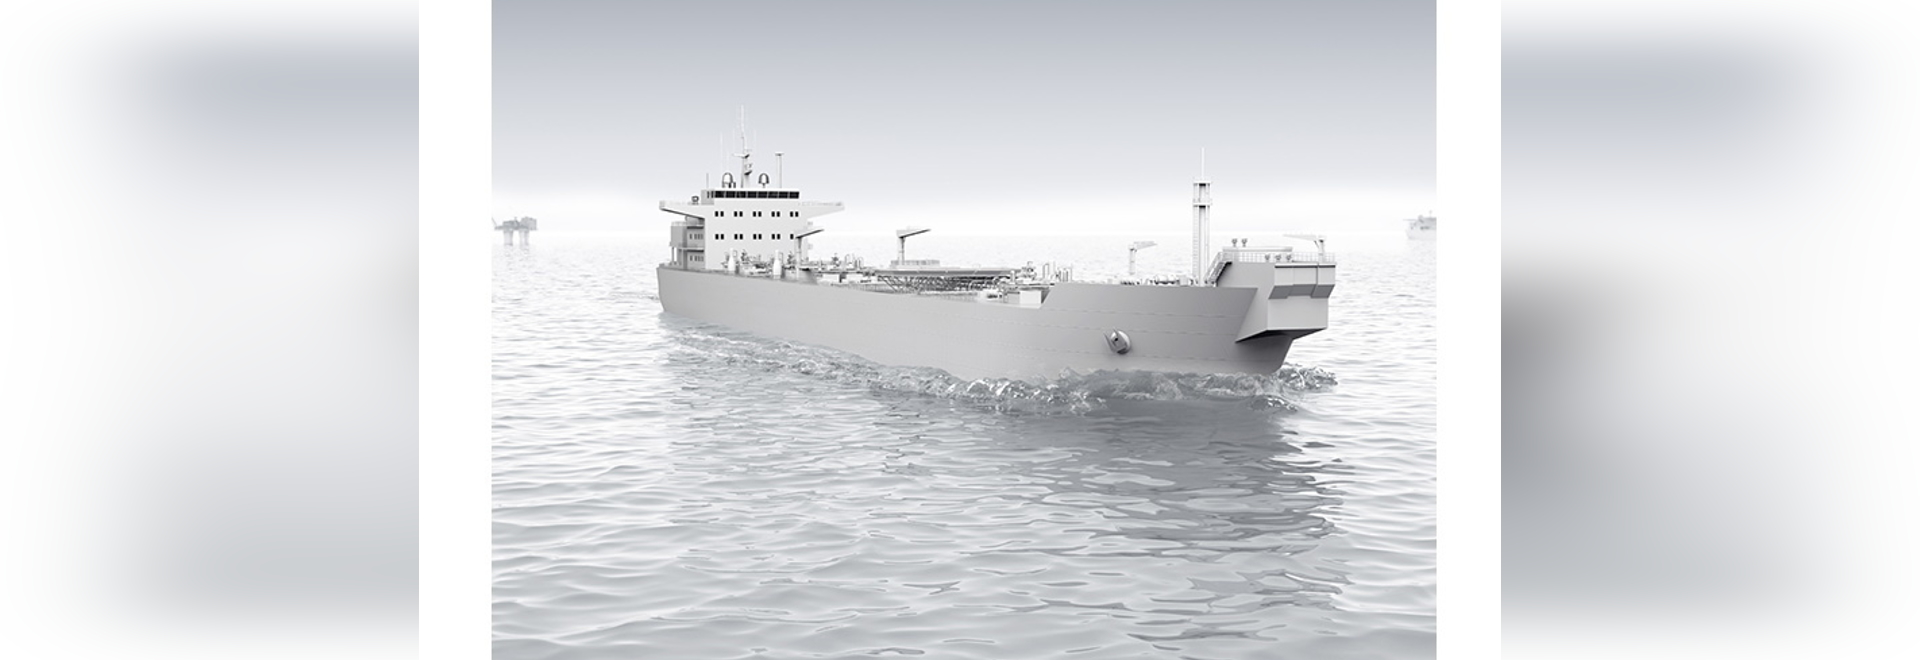 Set for delivery in 2022, shuttle tankers will operate in the North Sea and Barents Sea.